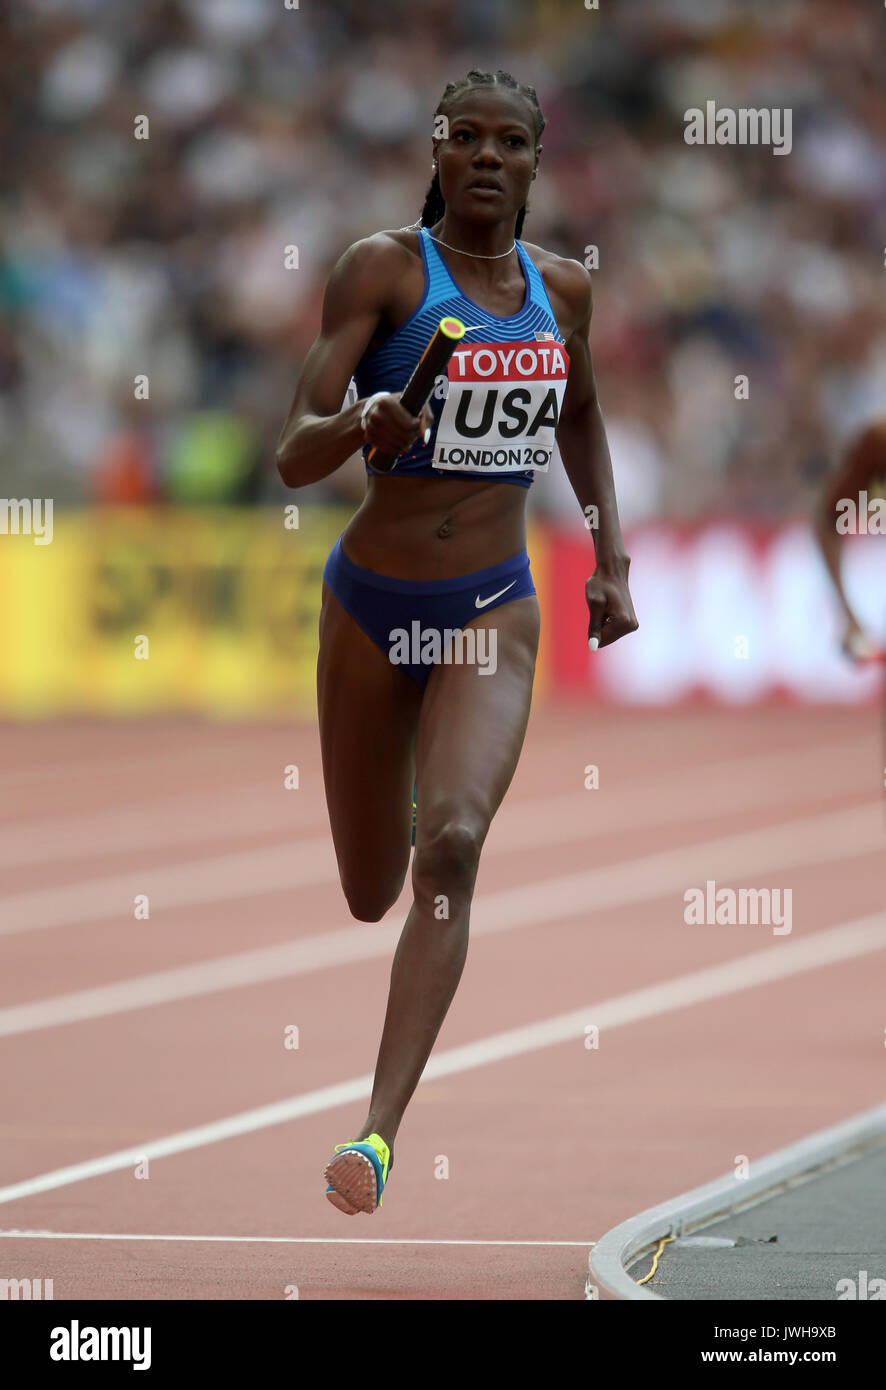 London, UK. 12 Aug, 2017. Shakima Wimbley 4 X400 Metres World Athletics Championships 2017 London Stam, London, England 12 August 2017 Credit: Allstar Picture Library/Alamy Live News - Stock Image